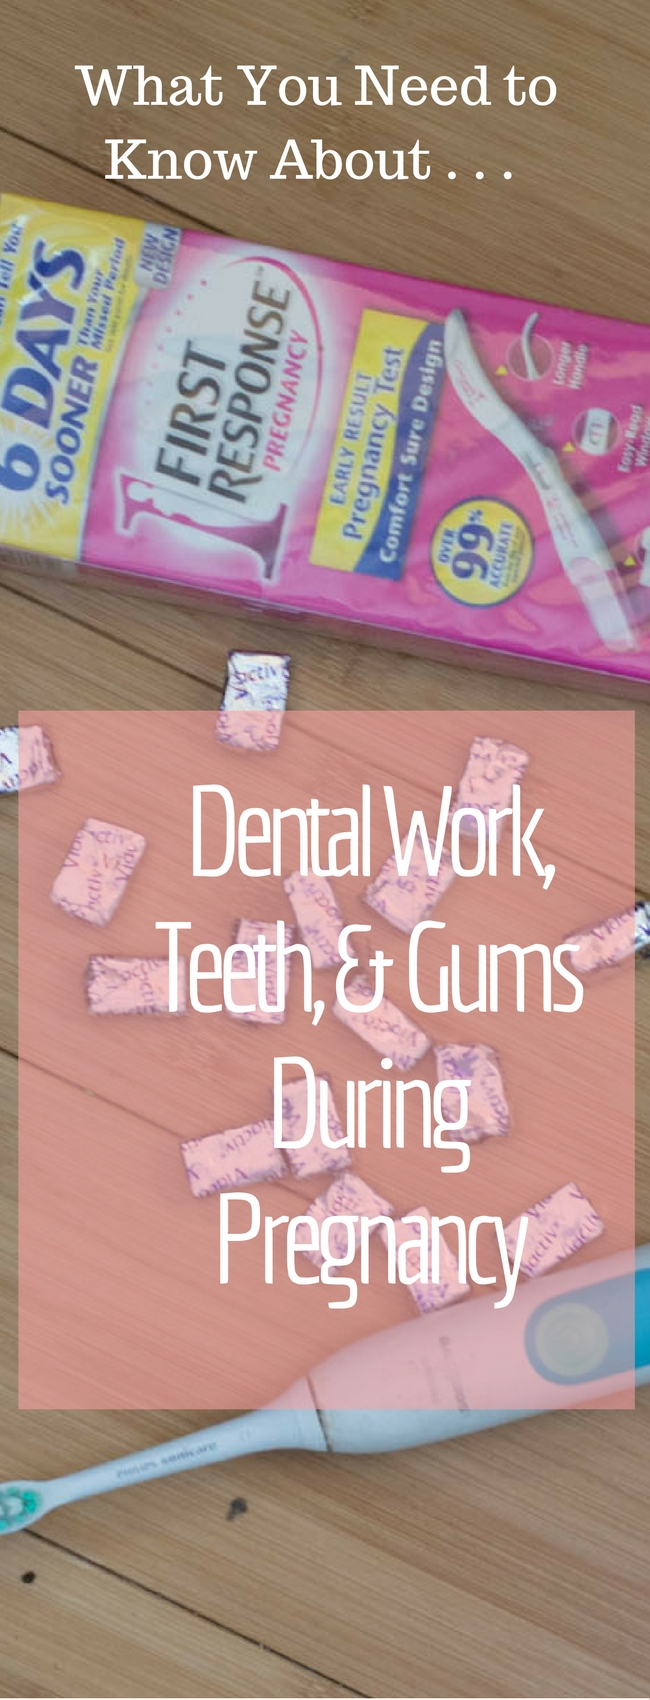 What you need to know about dental work during pregnancy, and why it is SO important to take care of your teeth and gums during pregnancy. via @clarkscondensed